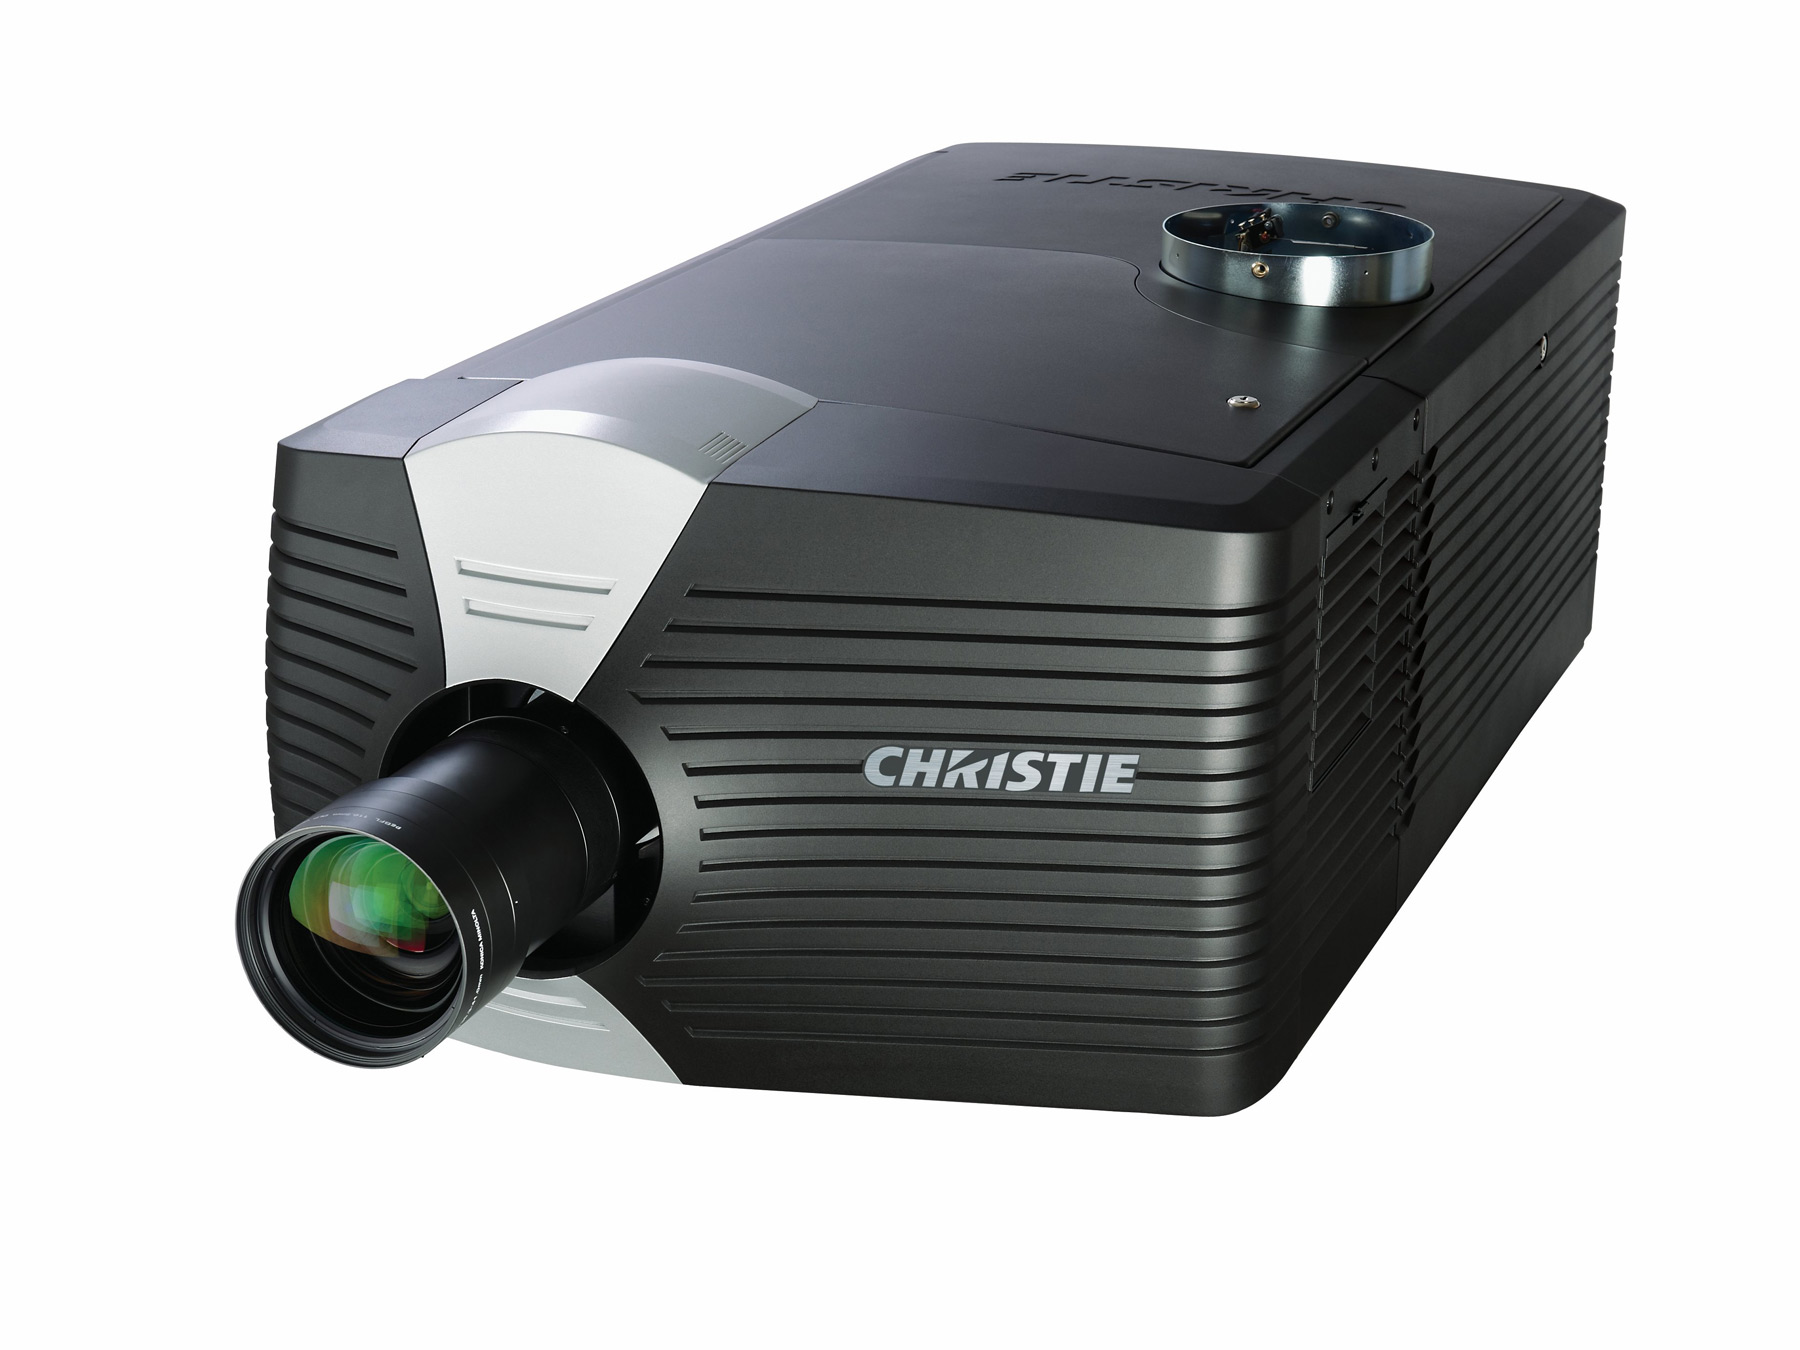 /globalassets/.catalog/products/images/christie-cp4220/gallery/digital-cinema-projector-4k-image-6.jpg